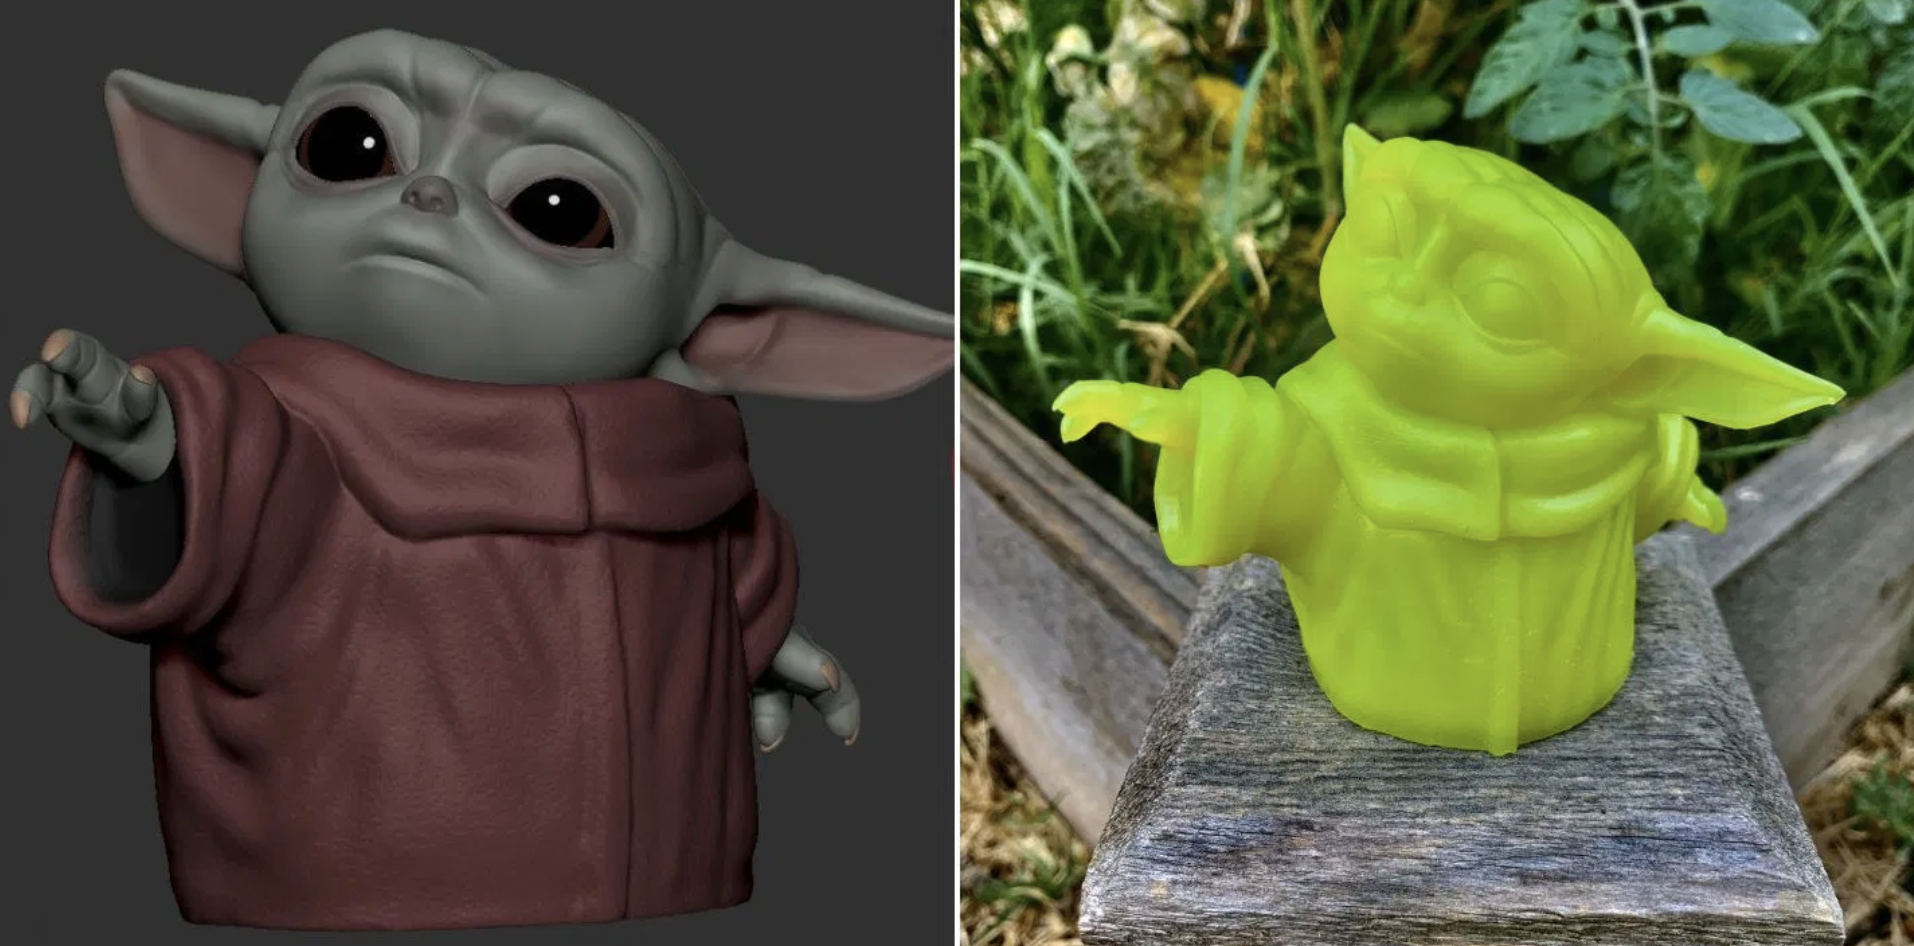 You Can Now 3D-Print Your Own Baby Yoda